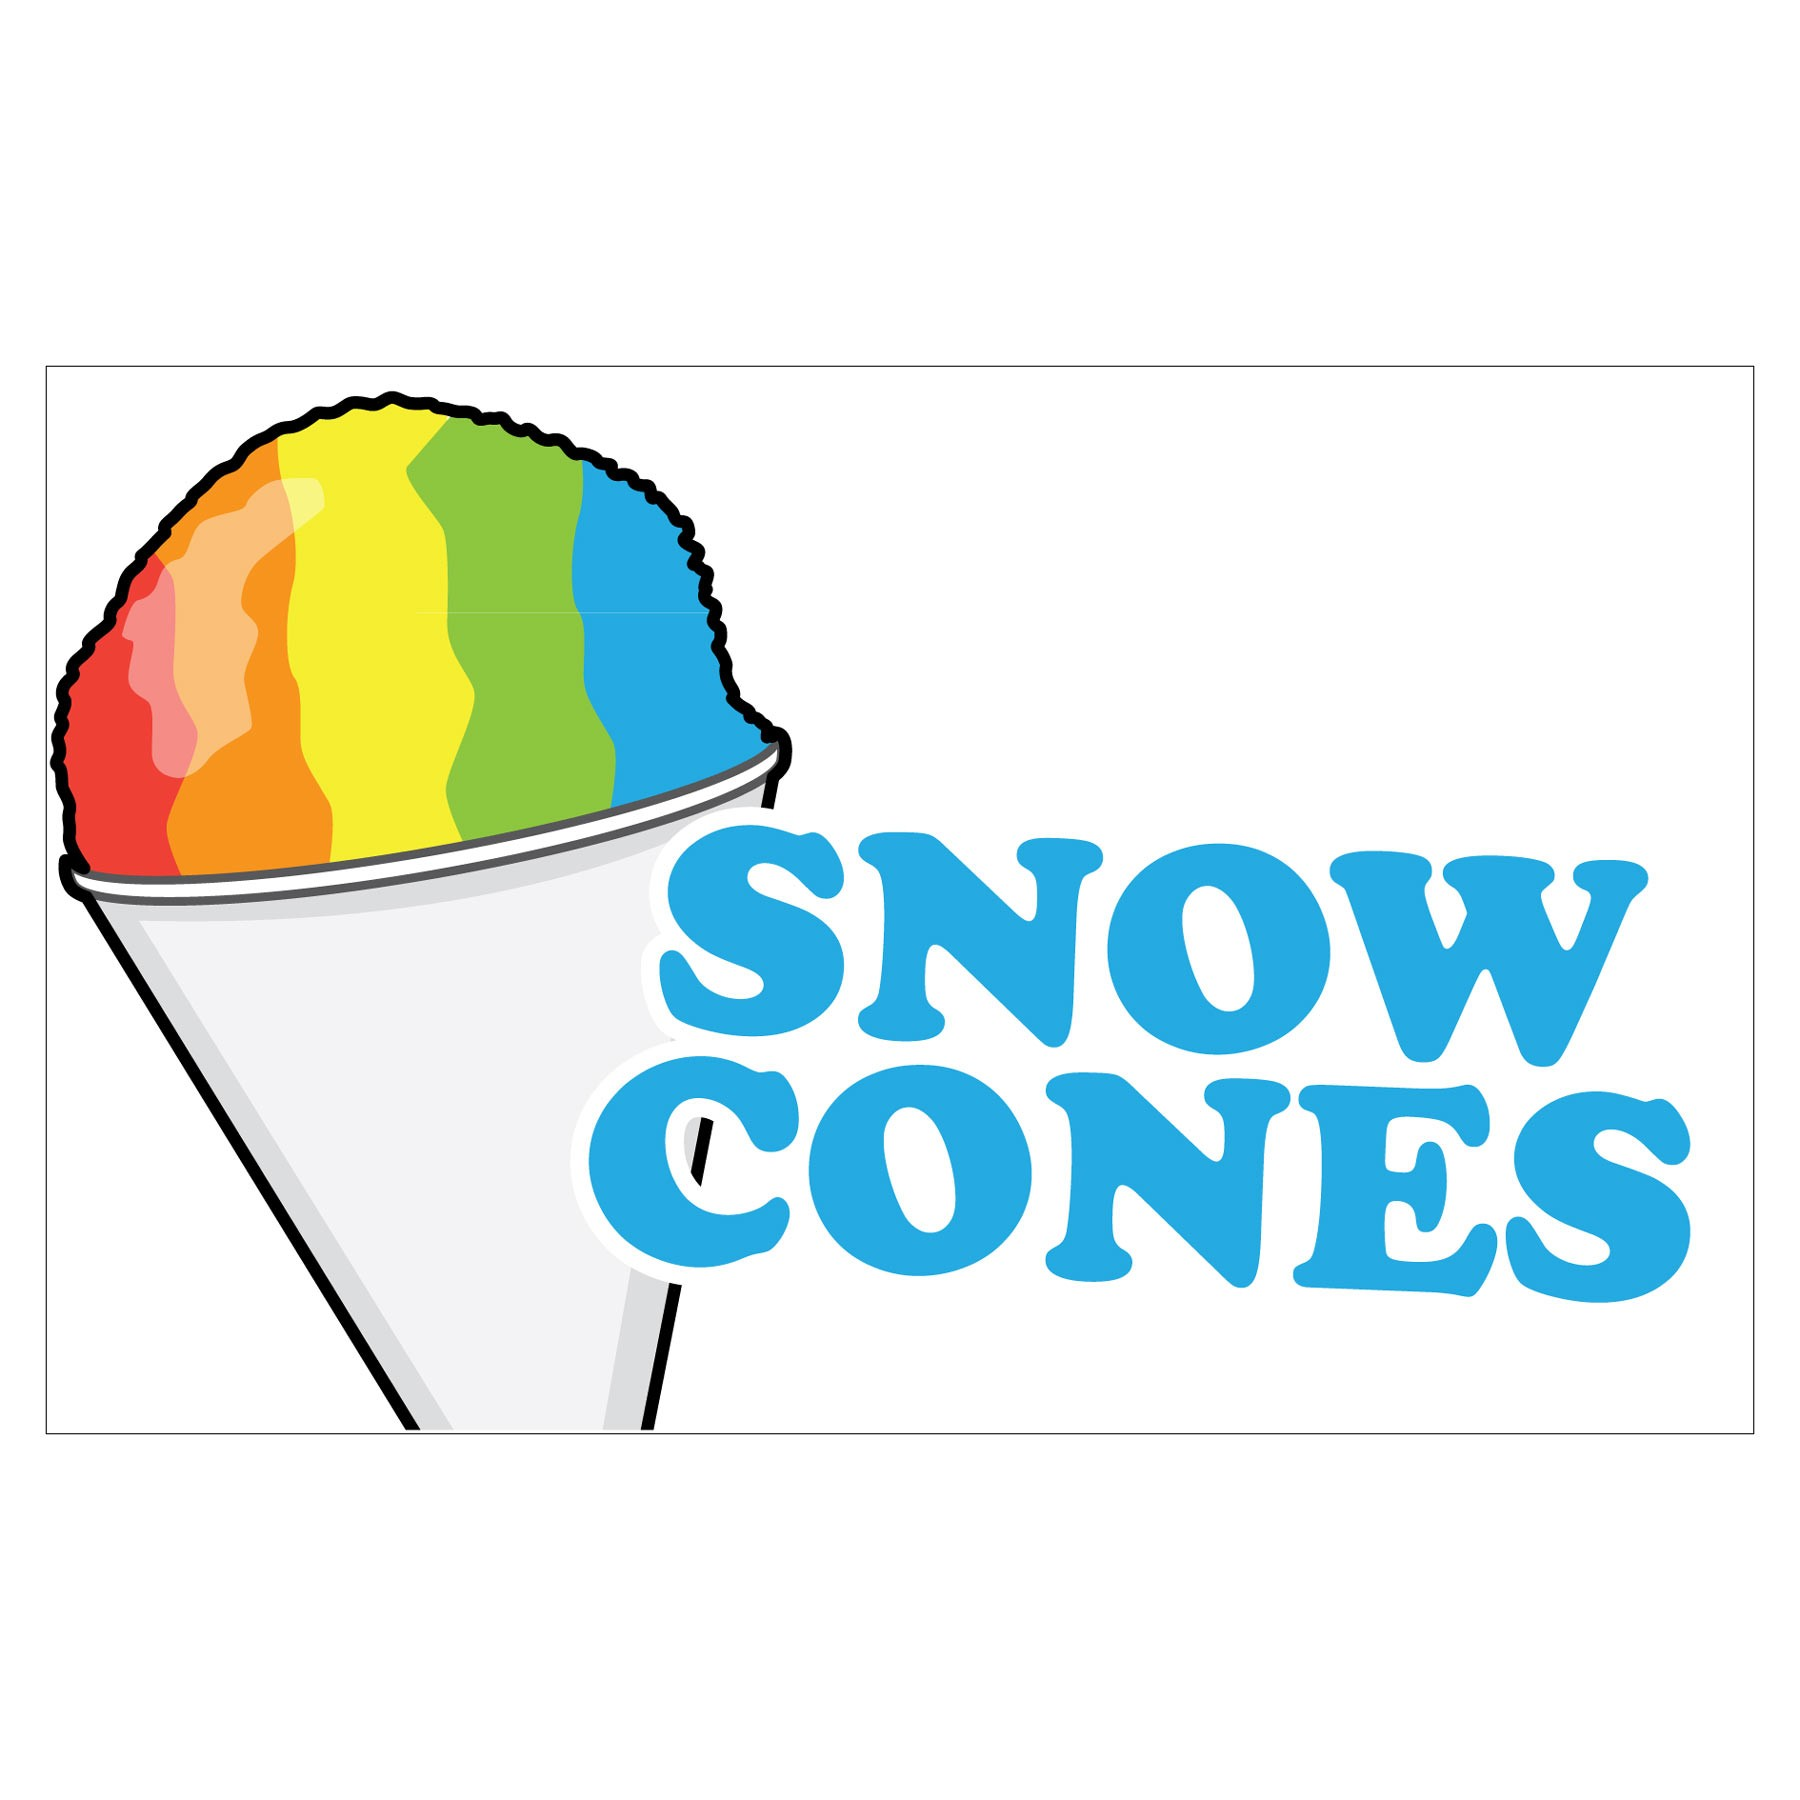 Free Snow Cone Cliparts, Download Free Clip Art, Free Clip Art on ... jpg free stock